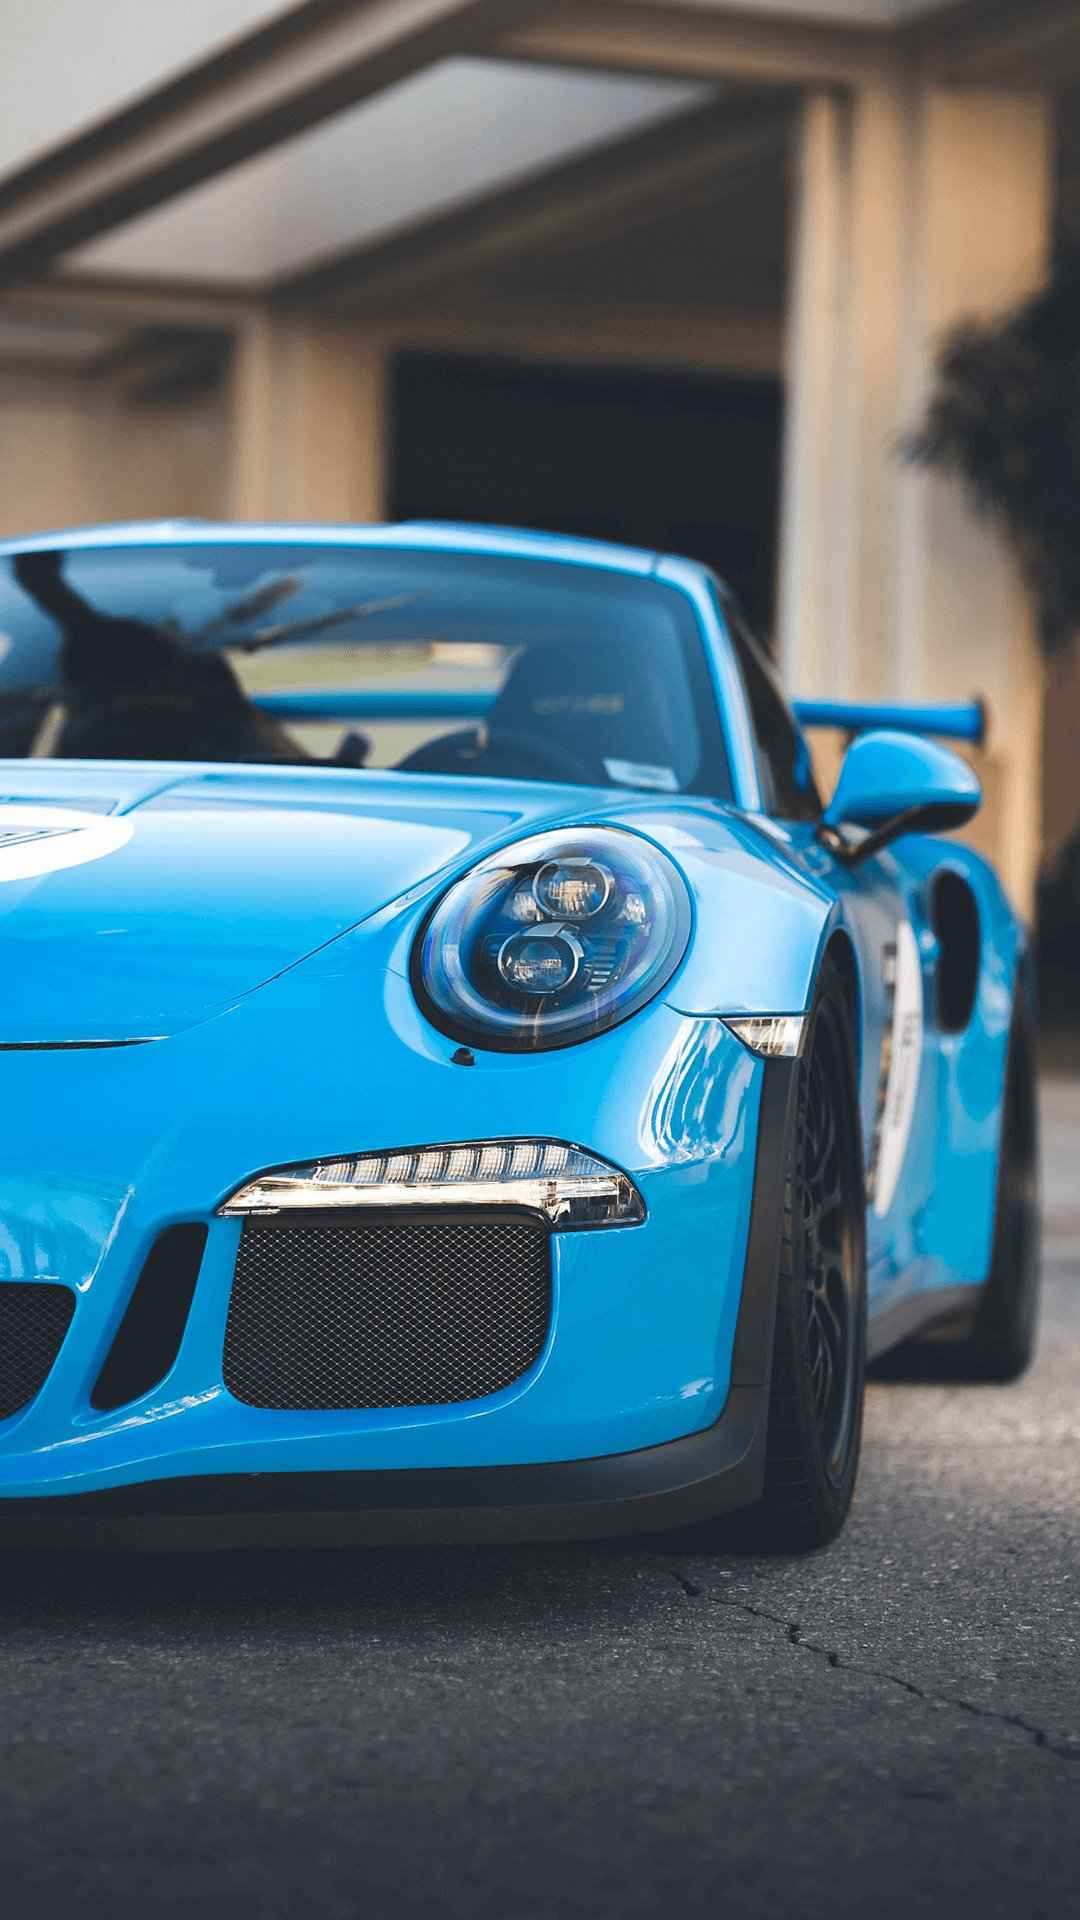 Muscle Cars Wallpapers For Iphone Porsche Car Iphone Wallpaper Iphone Wallpapers